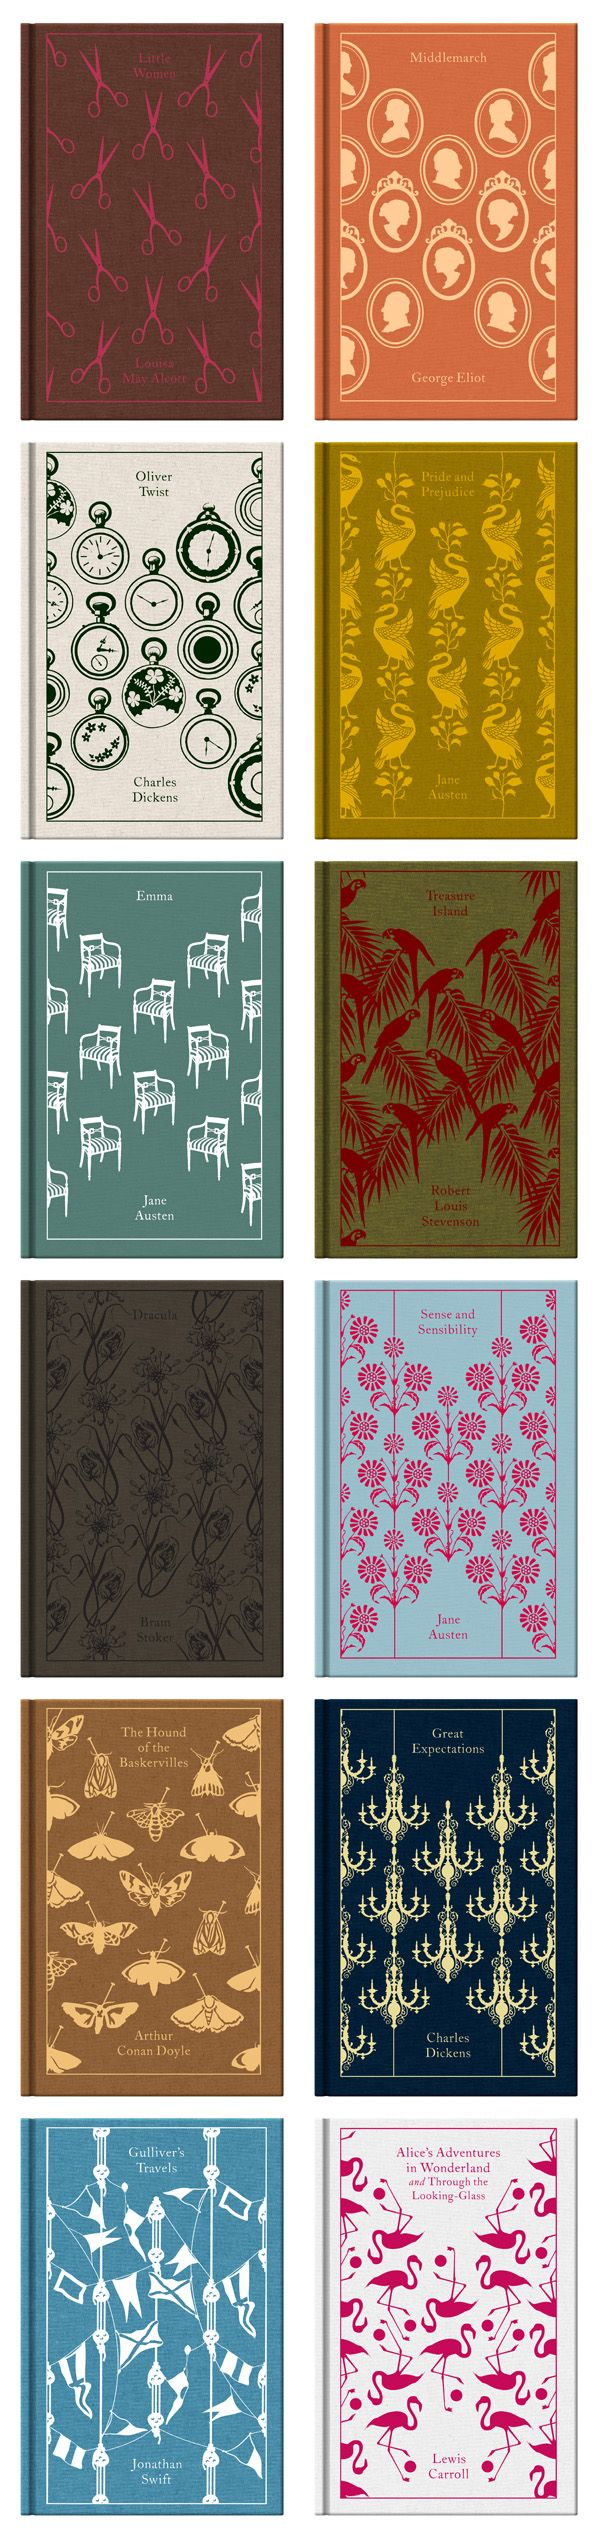 Penguin Classics - beautiful clothbound classic children's stories